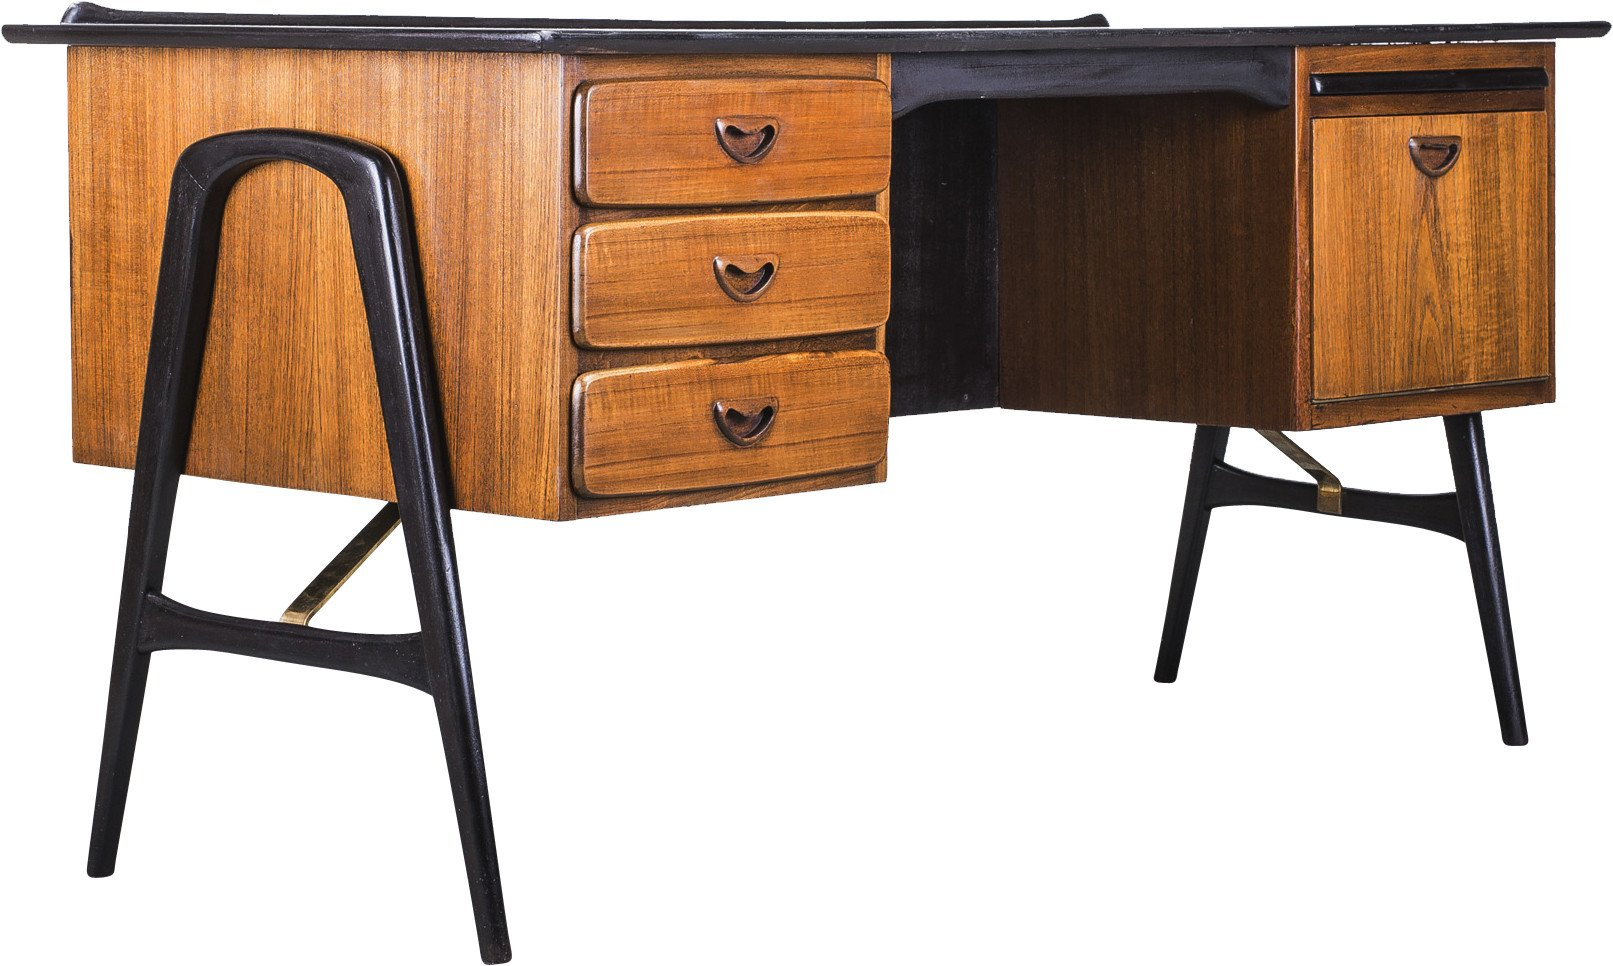 Desk by L. Van Teeffelen, Wébé, Holland, 1960s